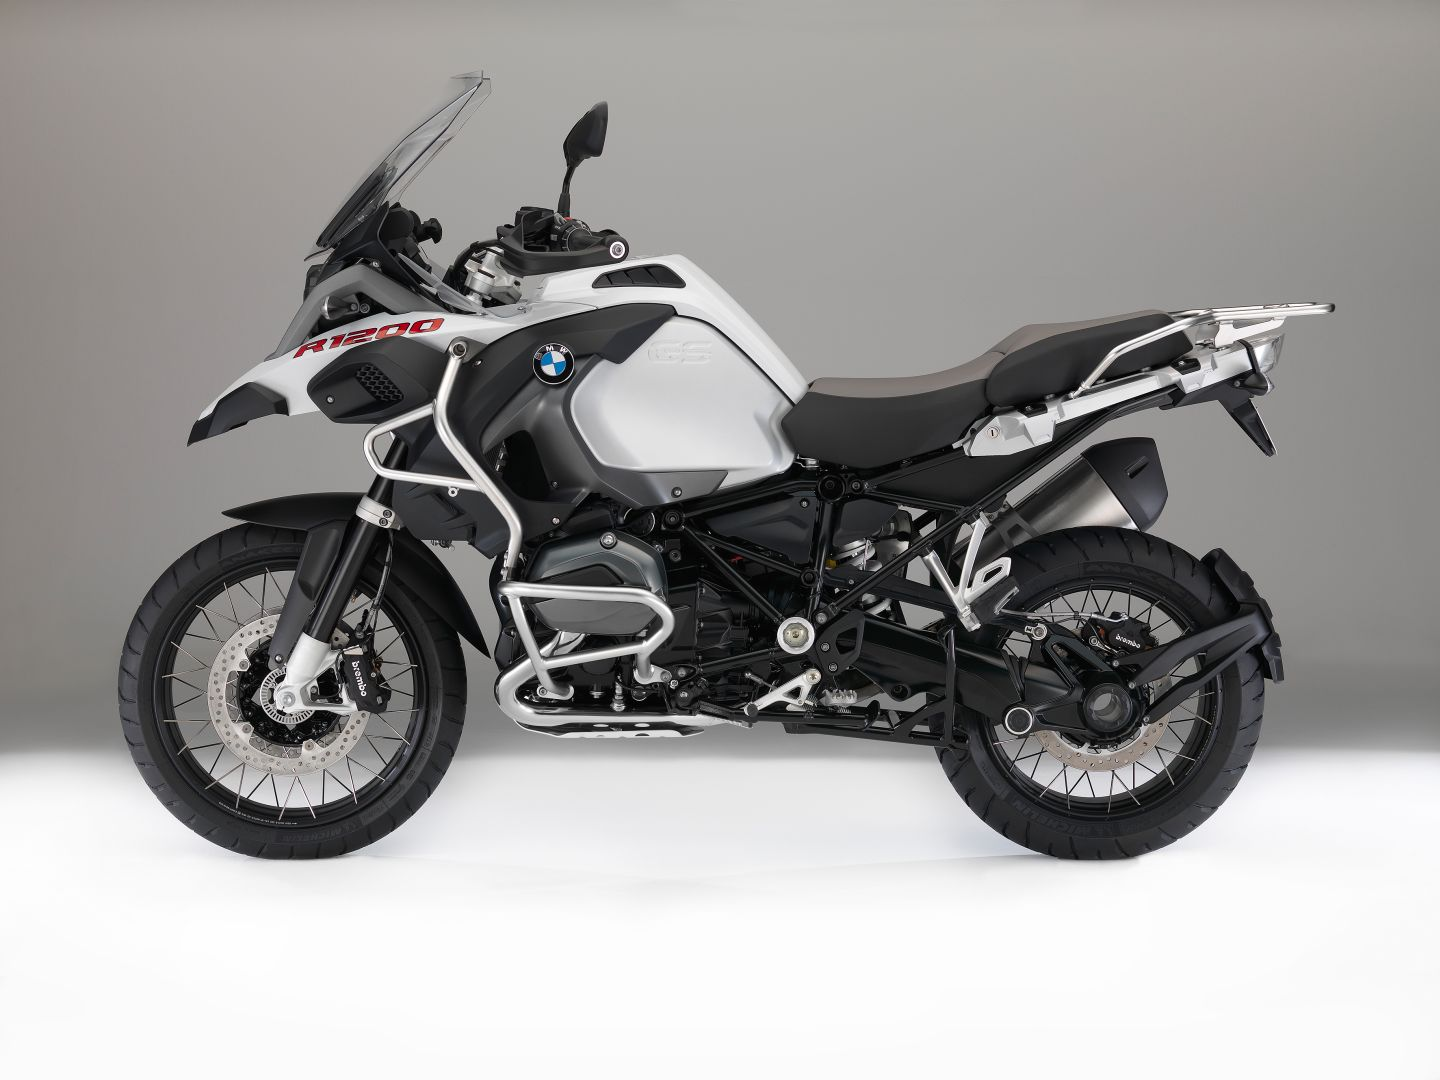 bmw motorcycles get upgraded colors and new features for 2016 autoevolution. Black Bedroom Furniture Sets. Home Design Ideas